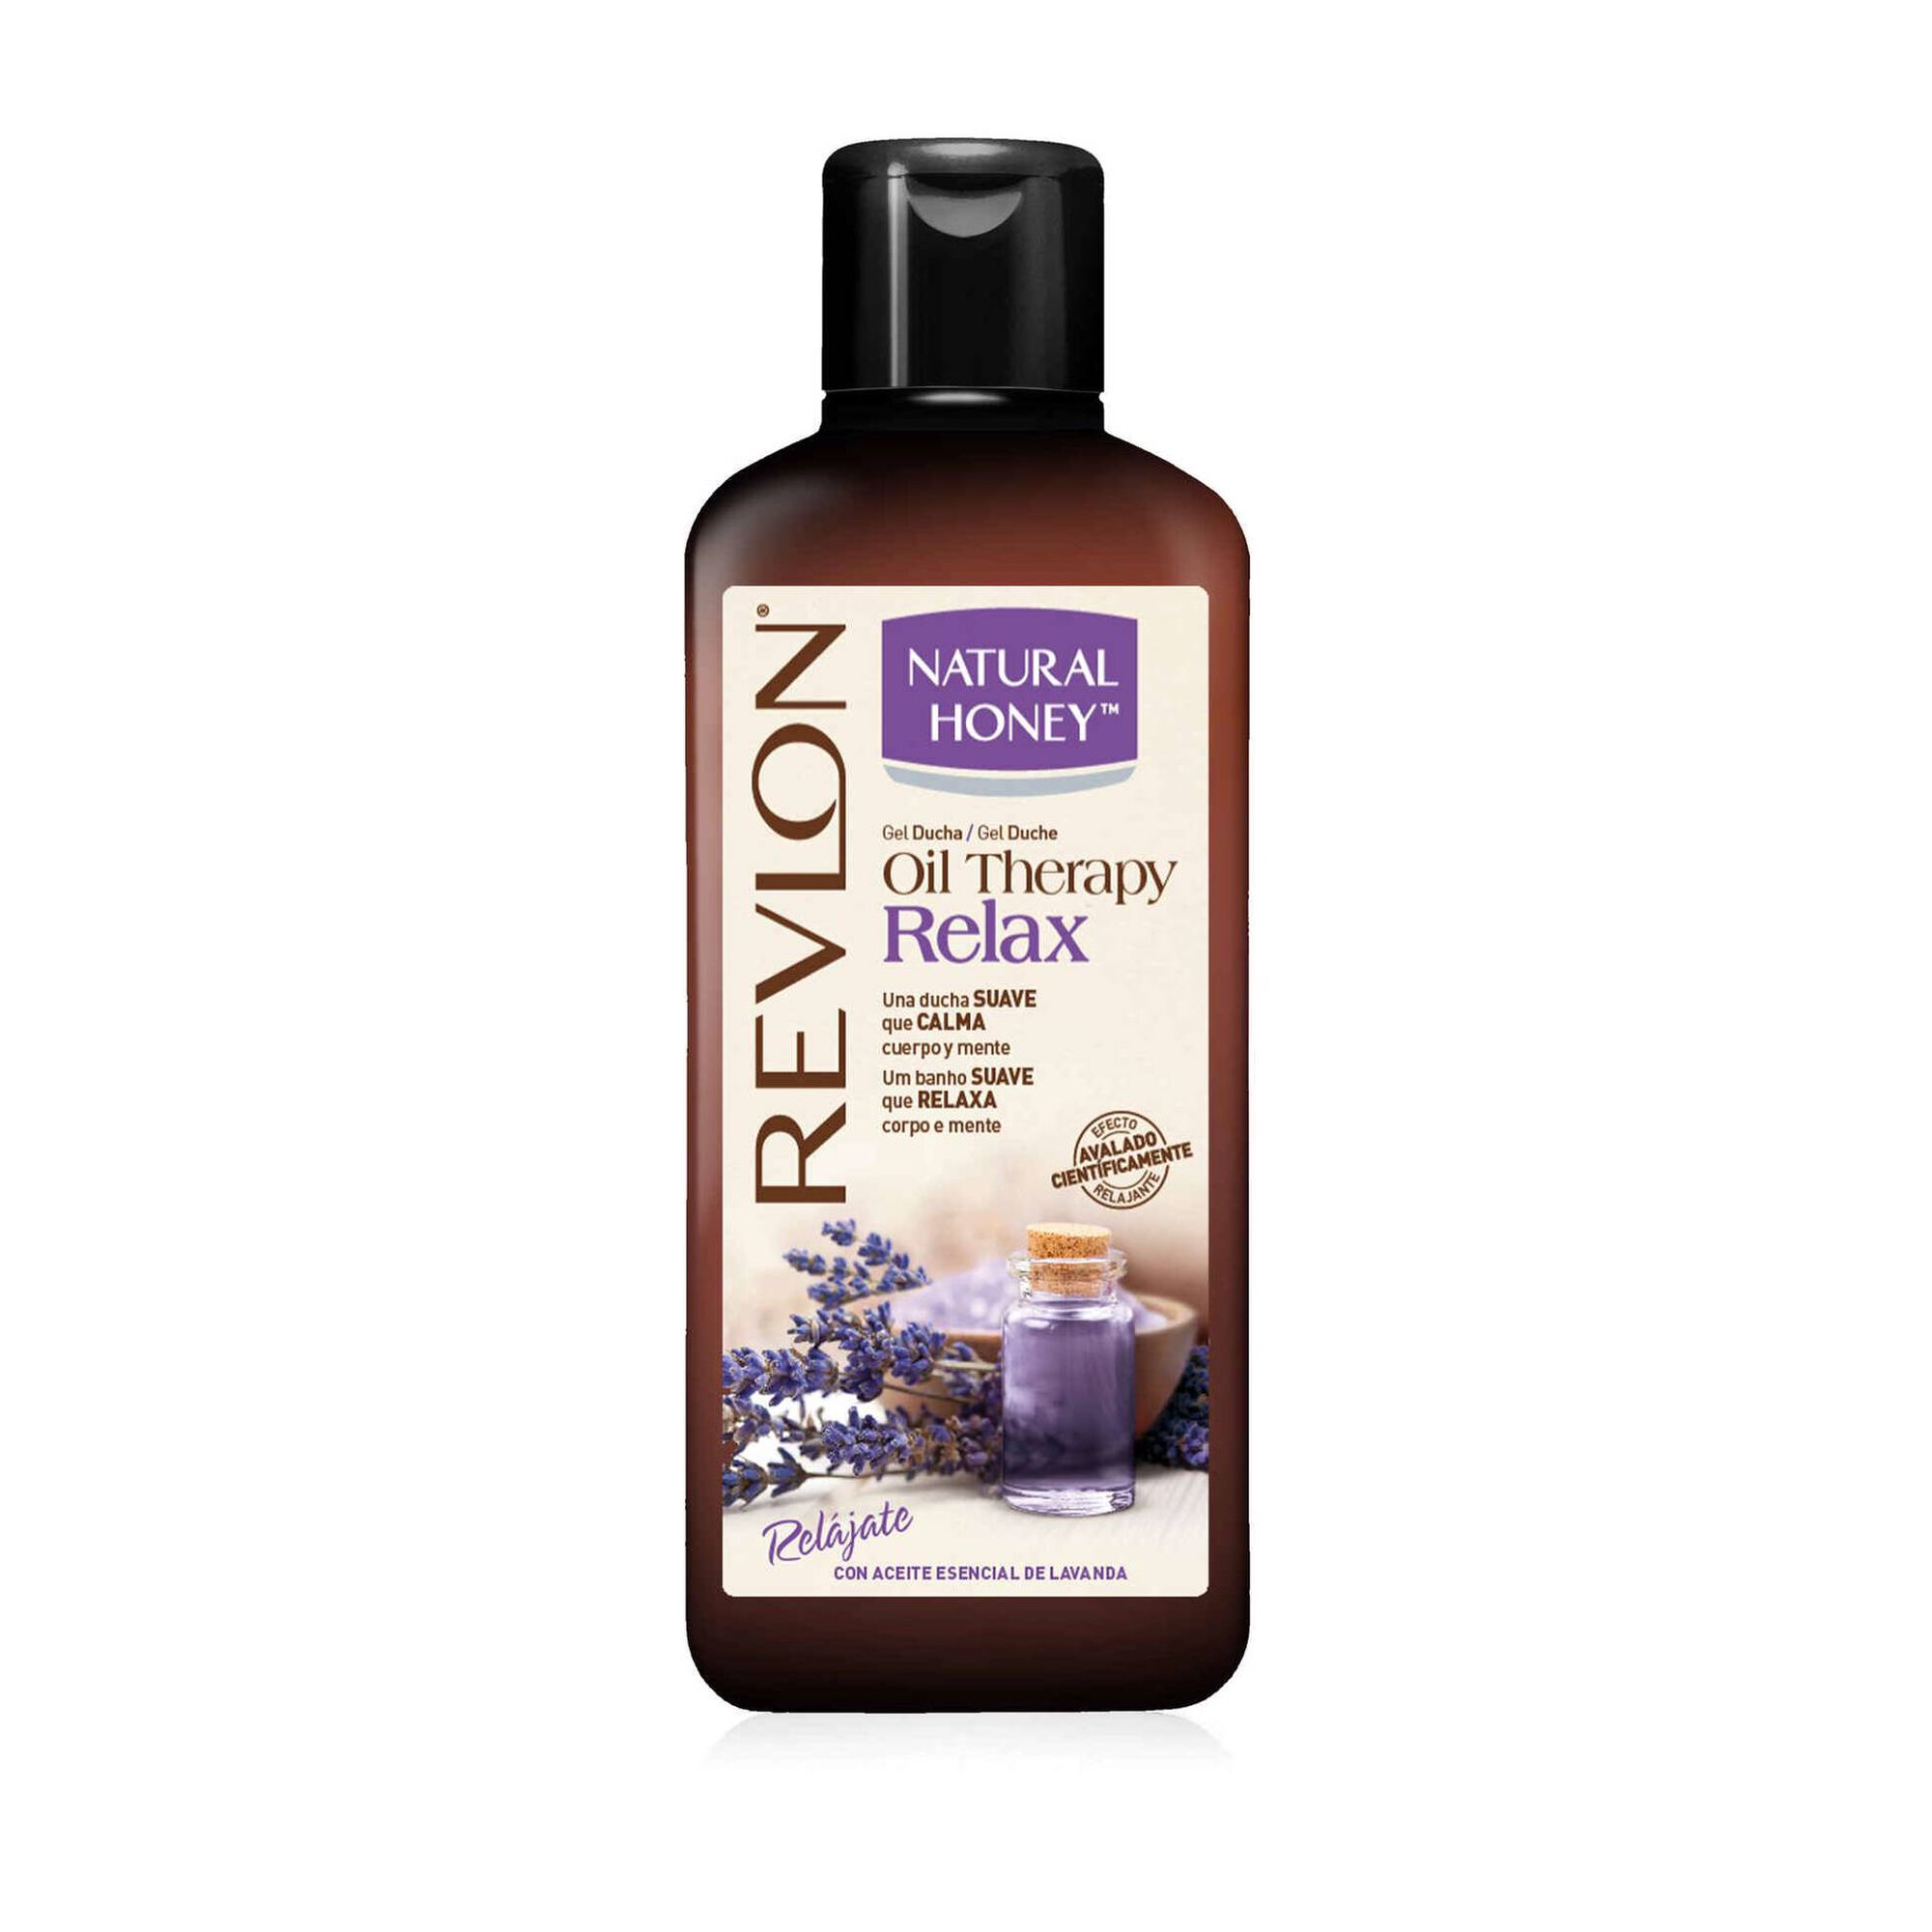 Gel de Banho Oil Therapy Relax